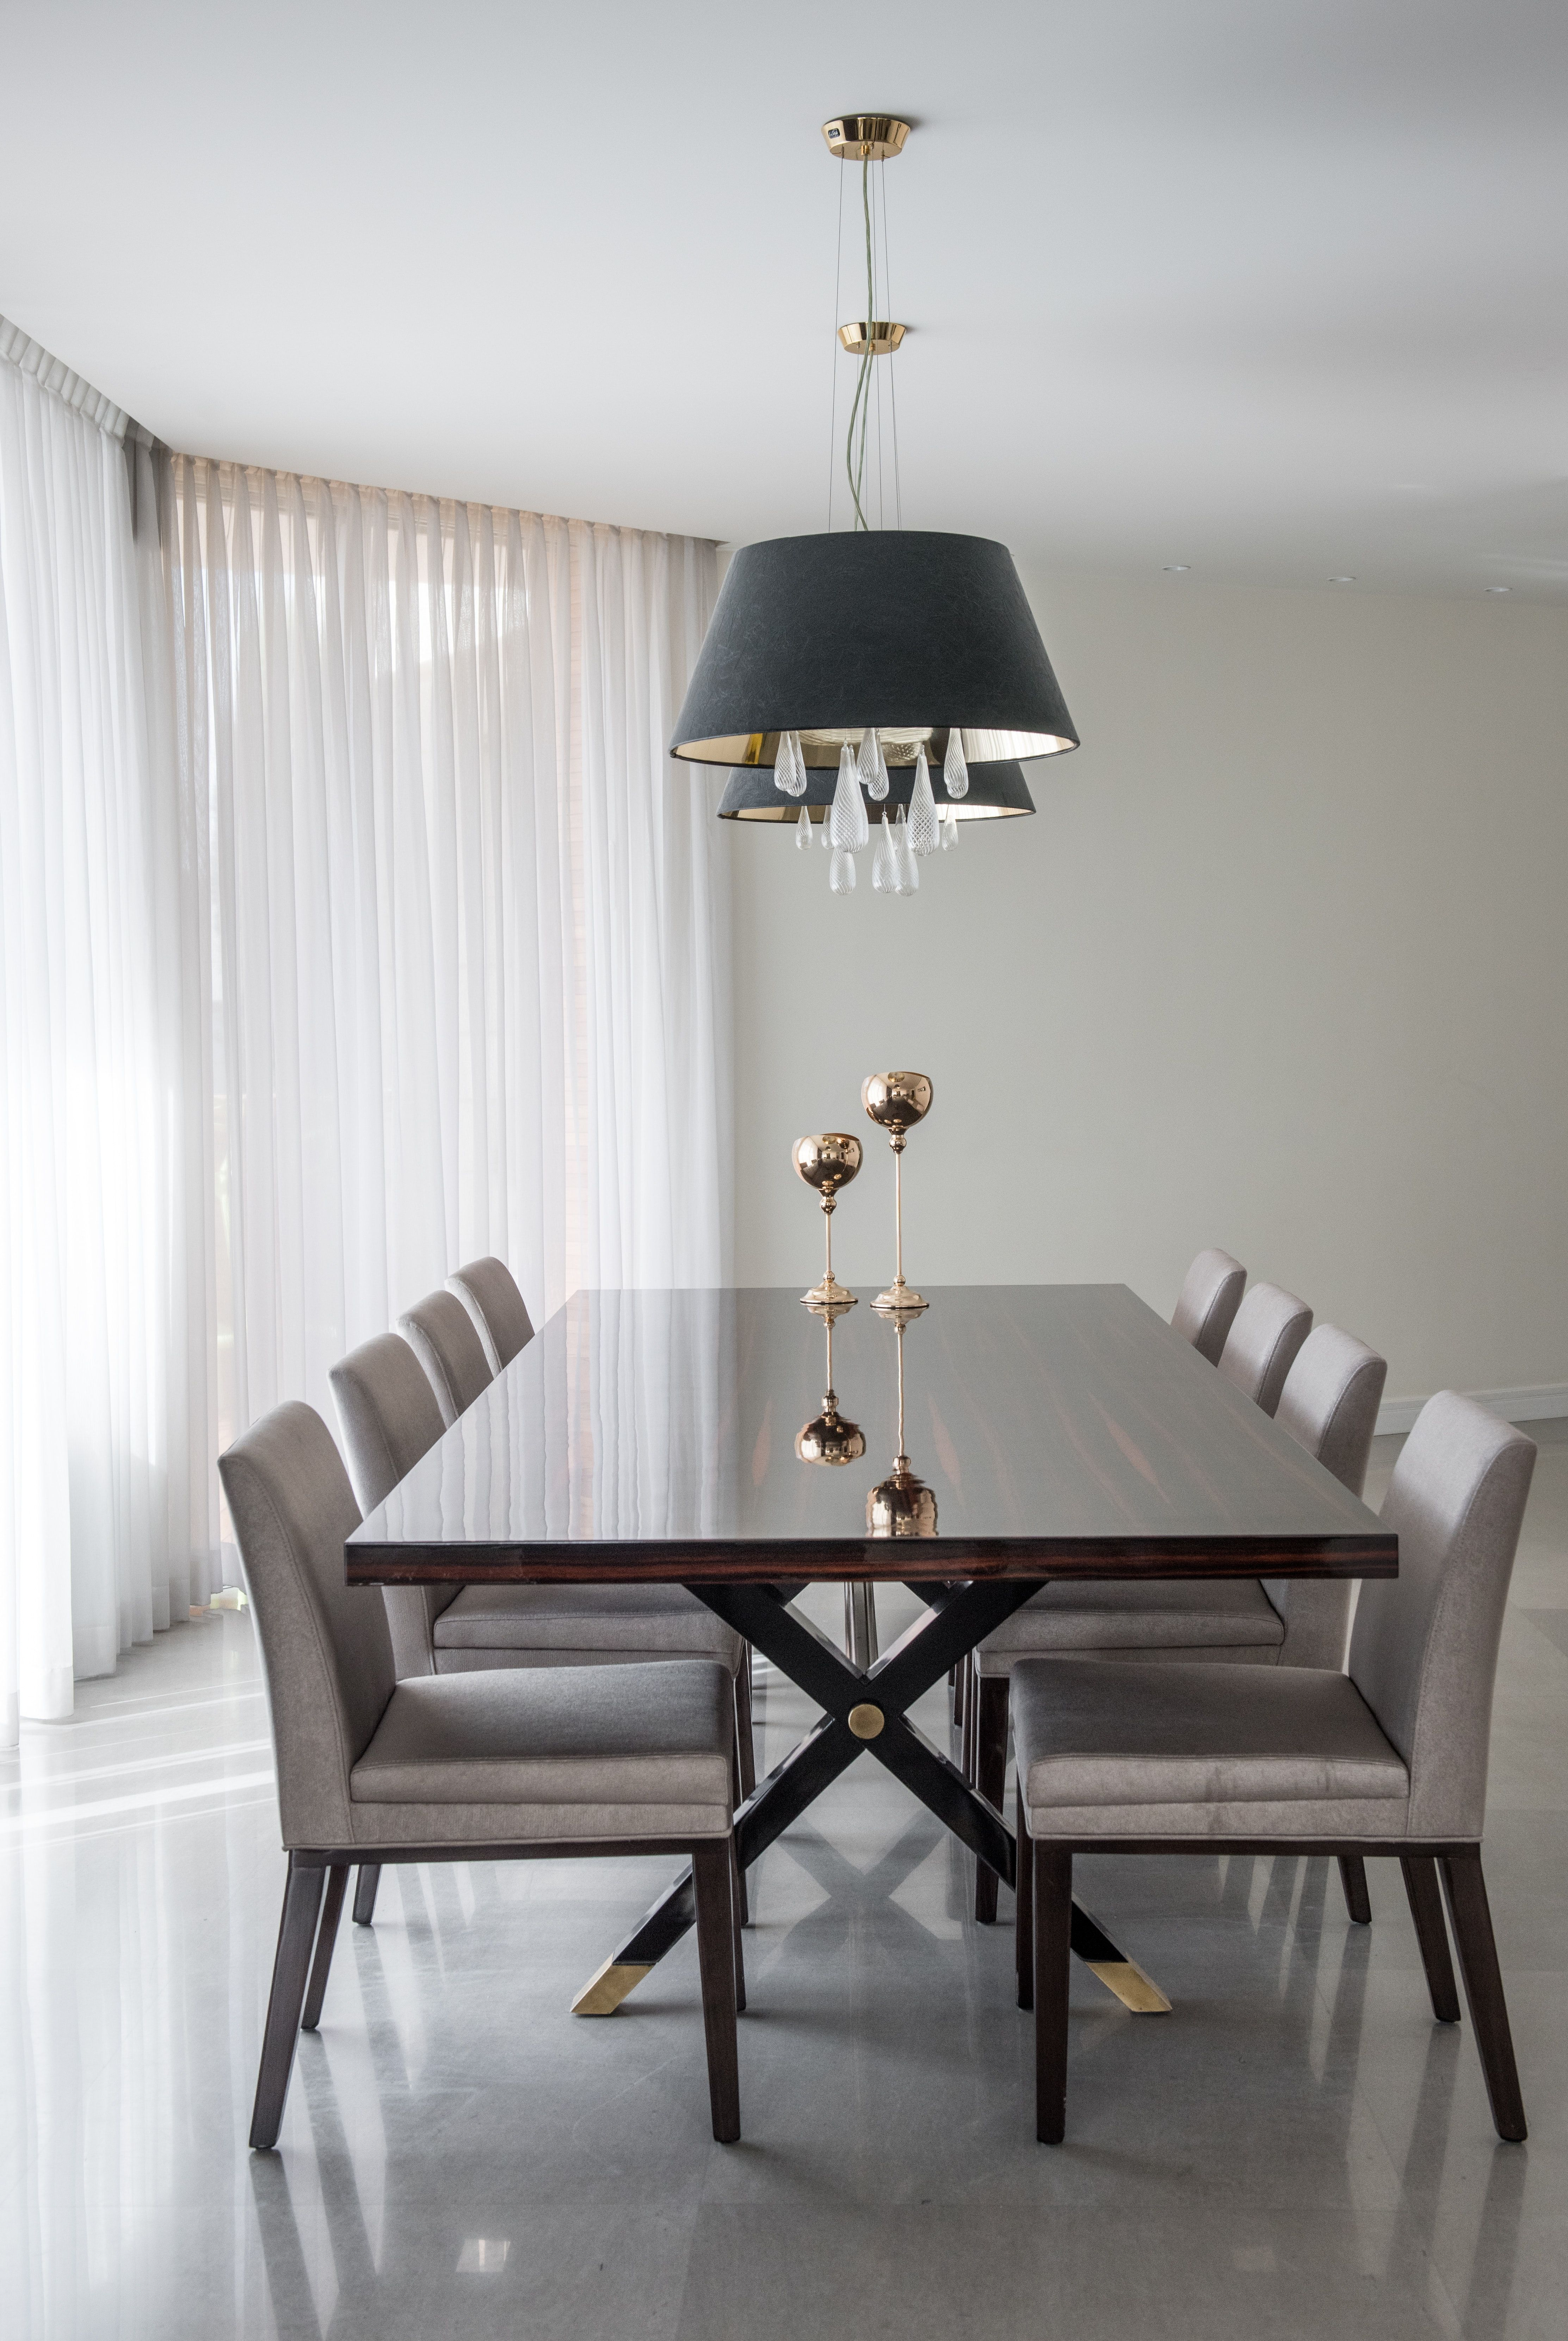 An Elegant And Minimalist High Gloss Ebony Dining Table With Brass